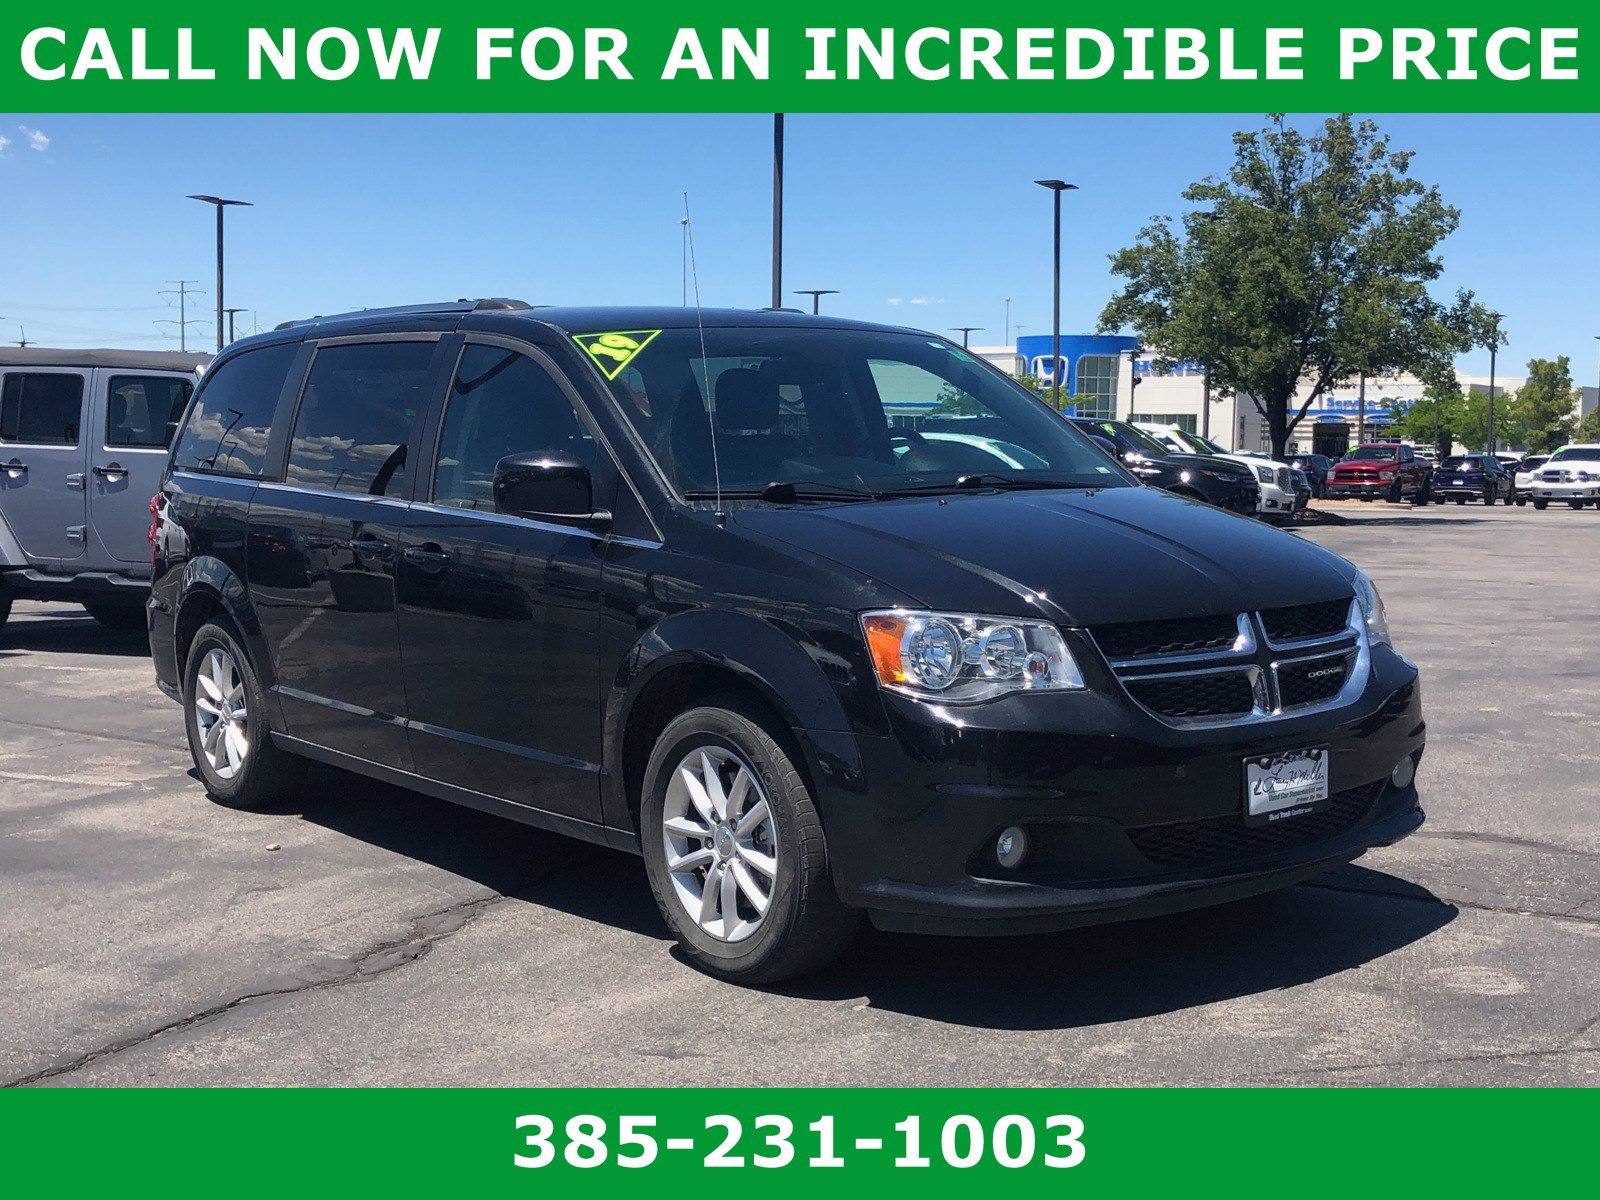 Pre Owned 2019 Dodge Grand Caravan Sxt Mini Van Passenger In Sandy S8254 2c4rdgcg3kr521378 Larry H Miller Used Car Supermarket